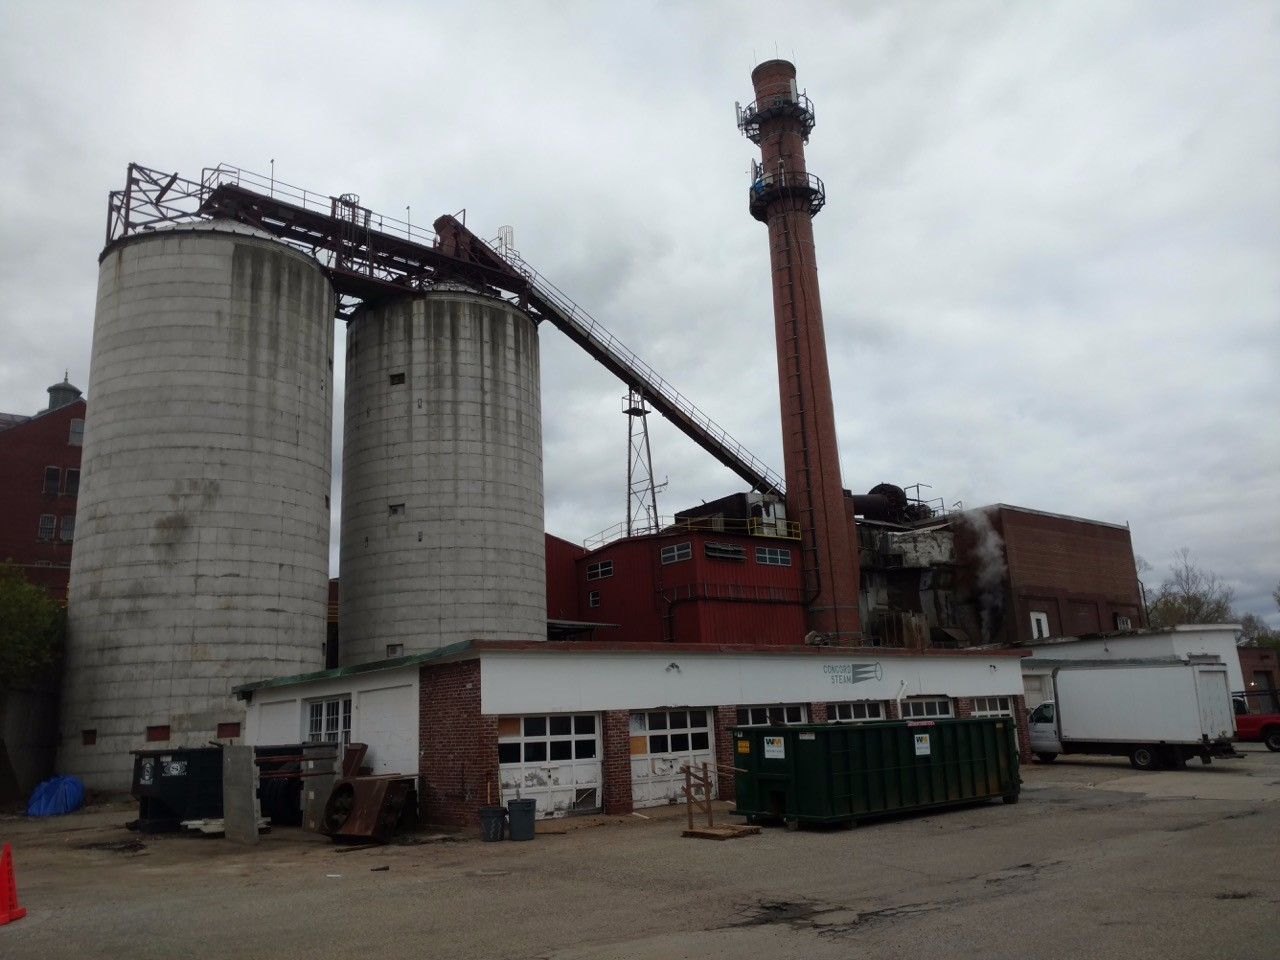 Redeployed Materials LLC for event Pioneering wood fired Combined Heat and Power(CHP) power plant